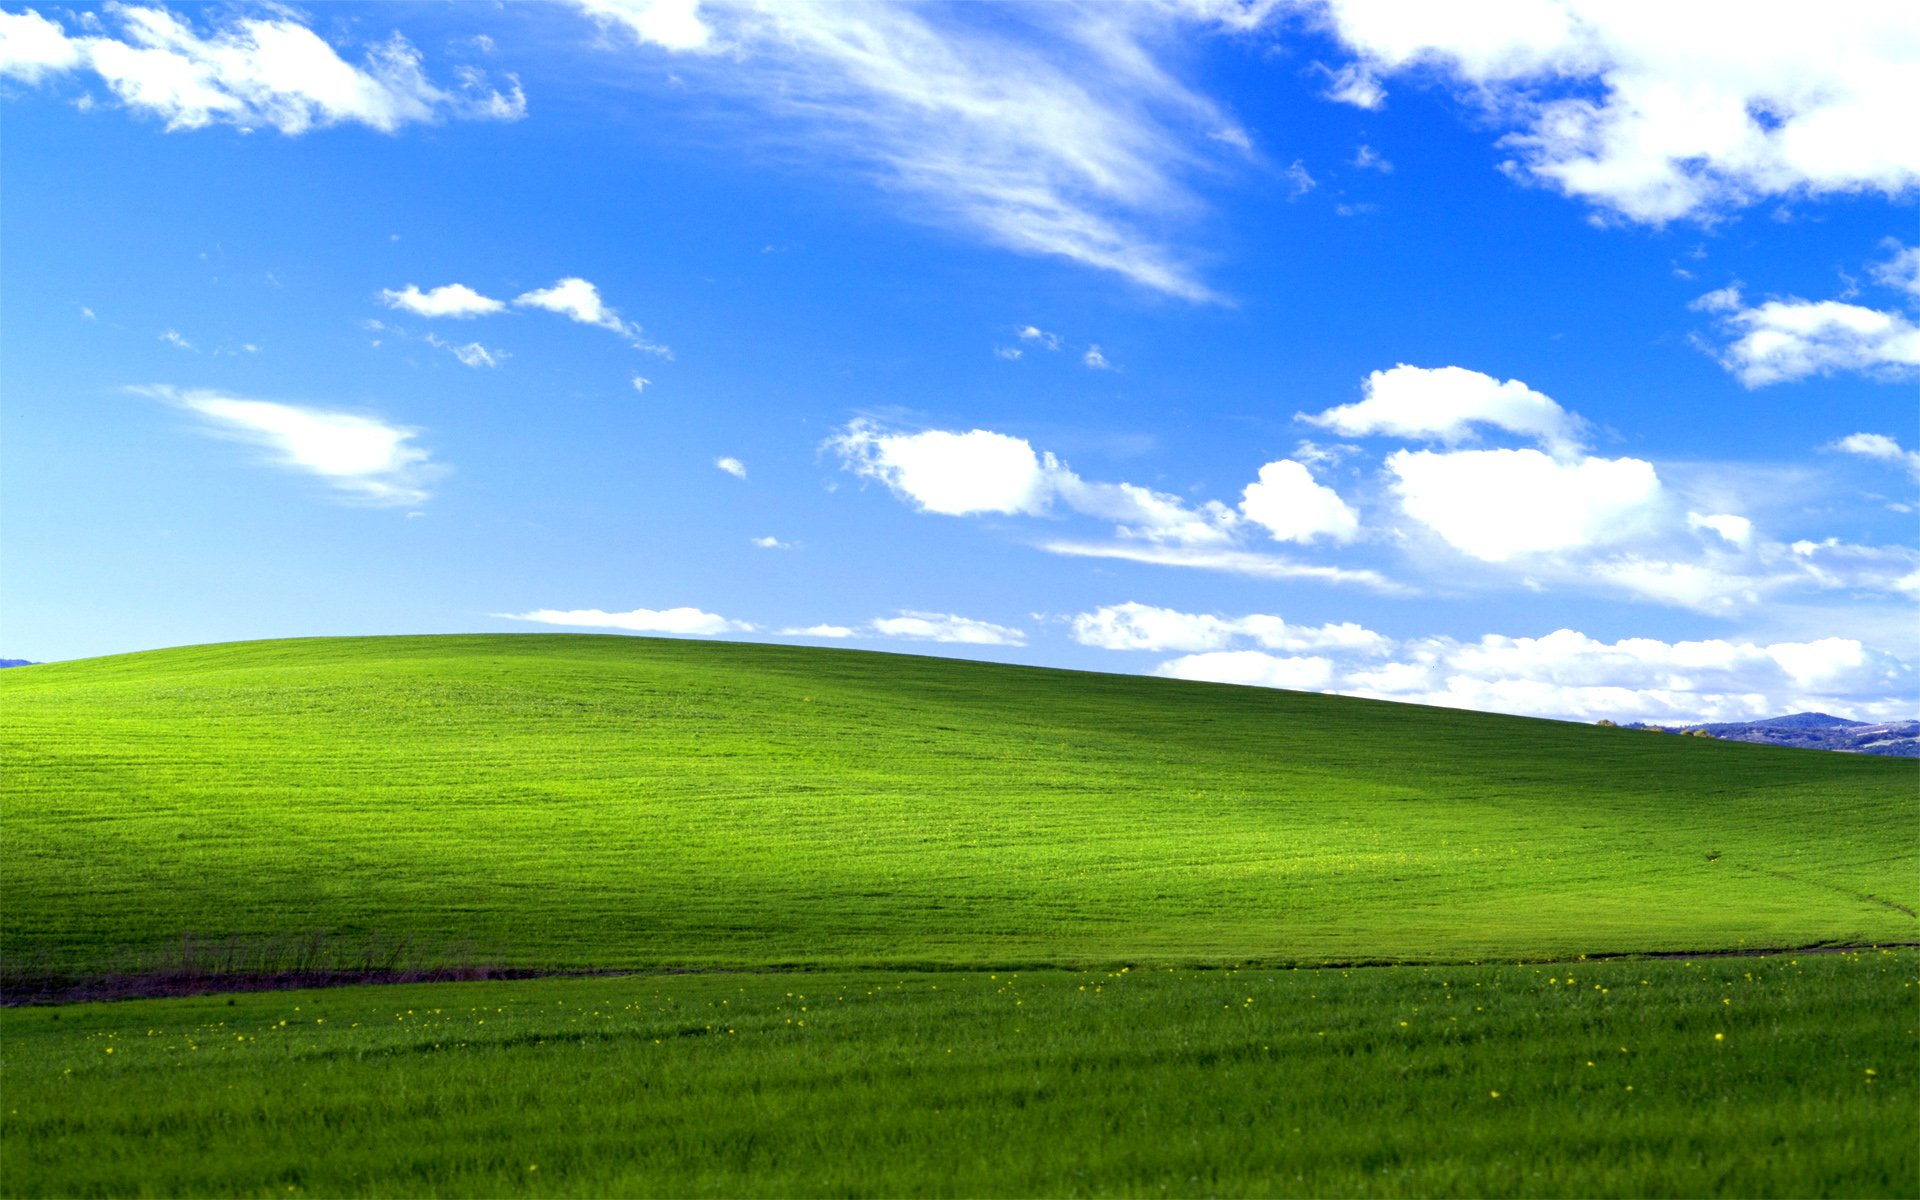 Windows Landscape Wallpaper HD 1089 Wallpaper High Resolution 1920x1200